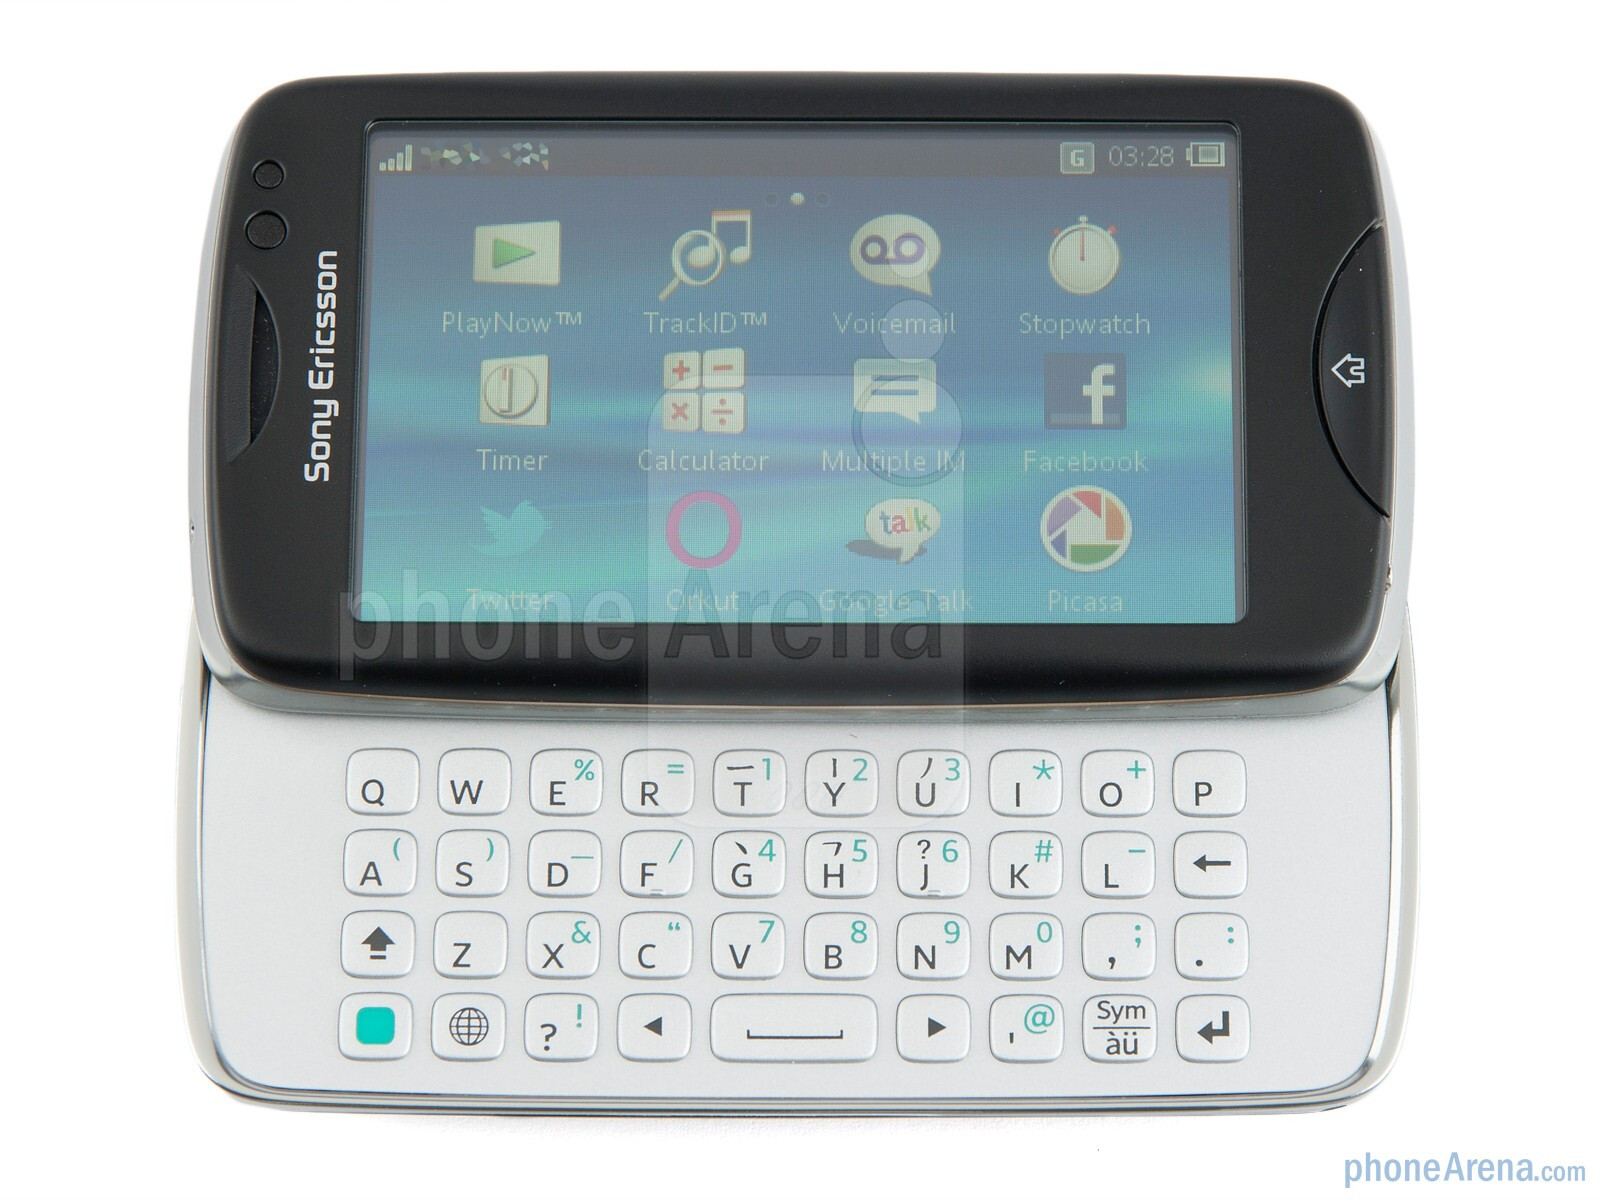 sony ericsson txt pro review rh phonearena com Sony Car Stereo User Manual Sony Operating Manuals